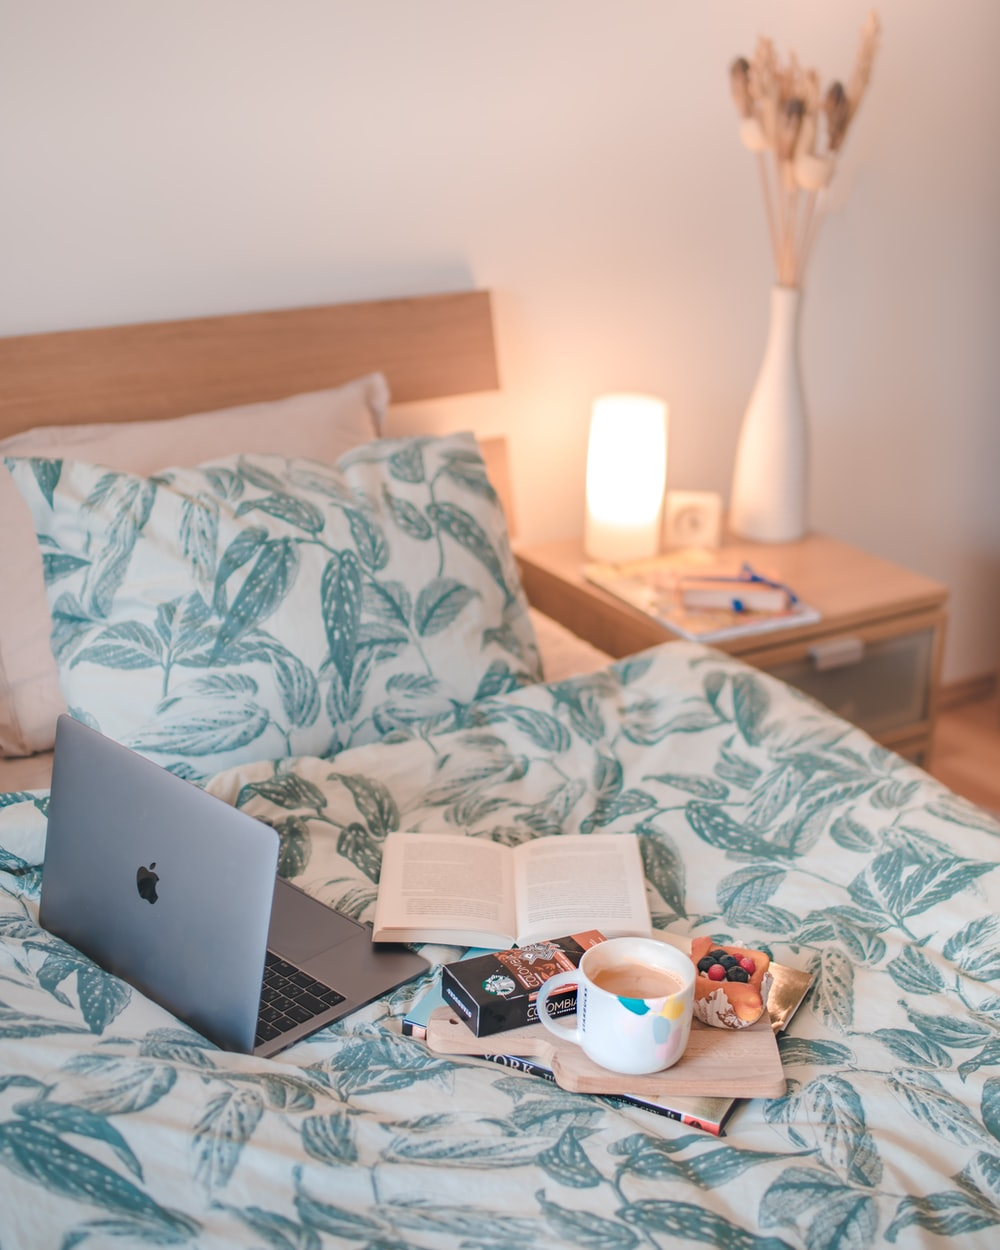 silver MacBook on top of white-and-blue bedding set